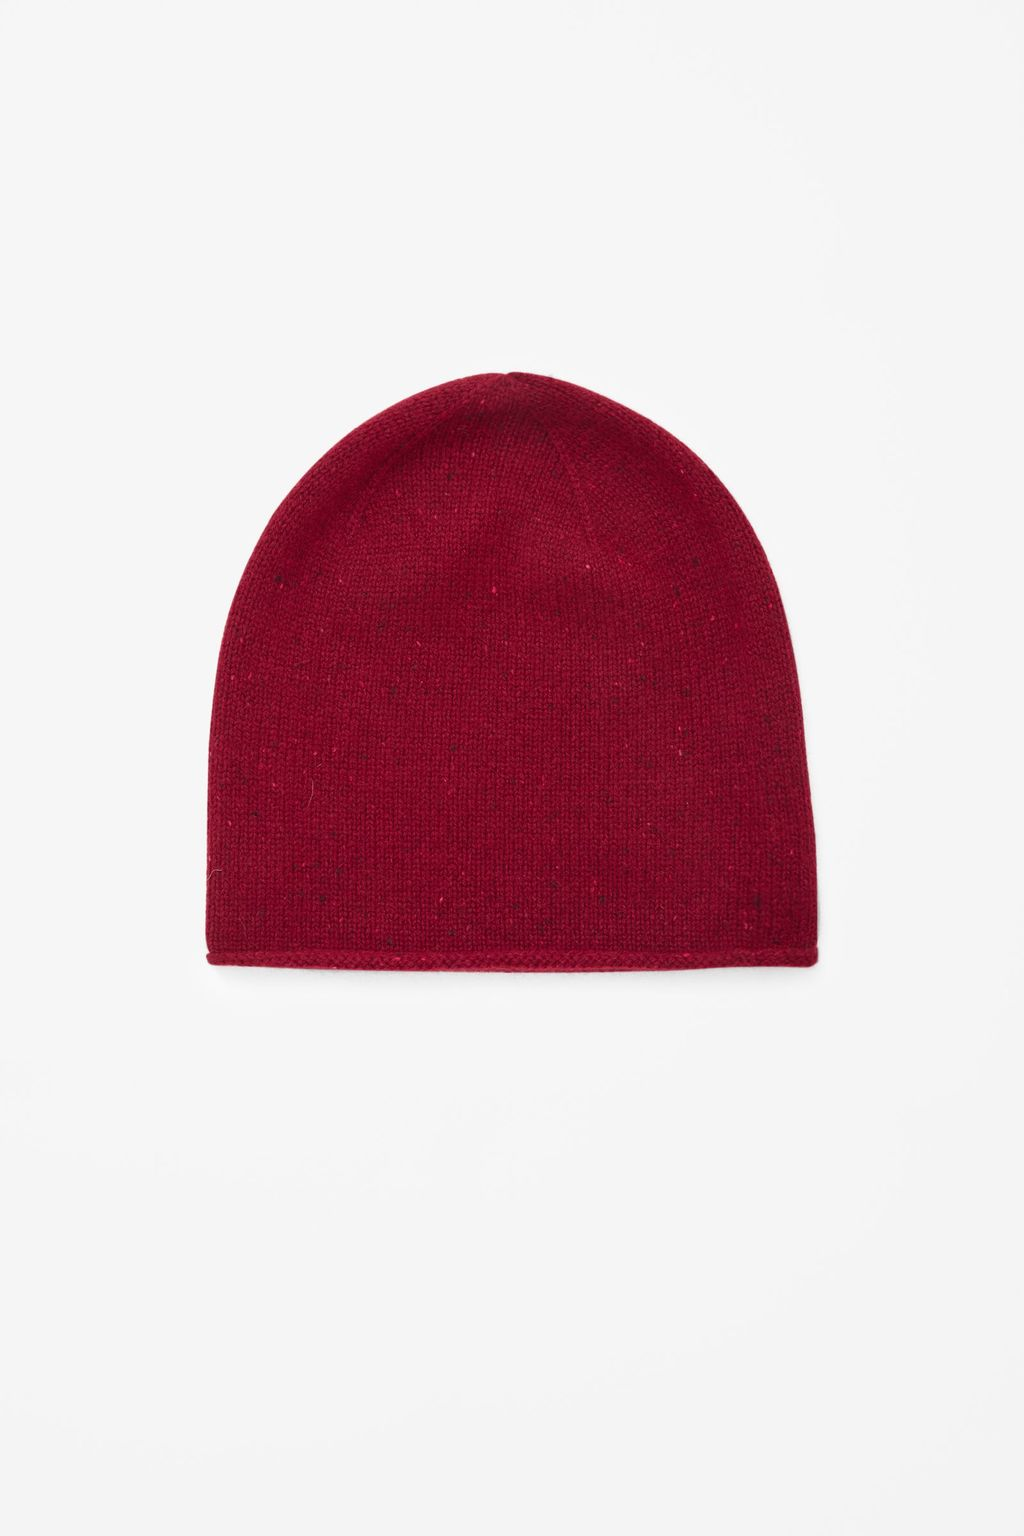 Speckled Cashmere Hat - occasions: casual; style: beanie; size: standard; pattern: plain; material: cashmere; predominant colour: raspberry; season: a/w 2015; wardrobe: highlight